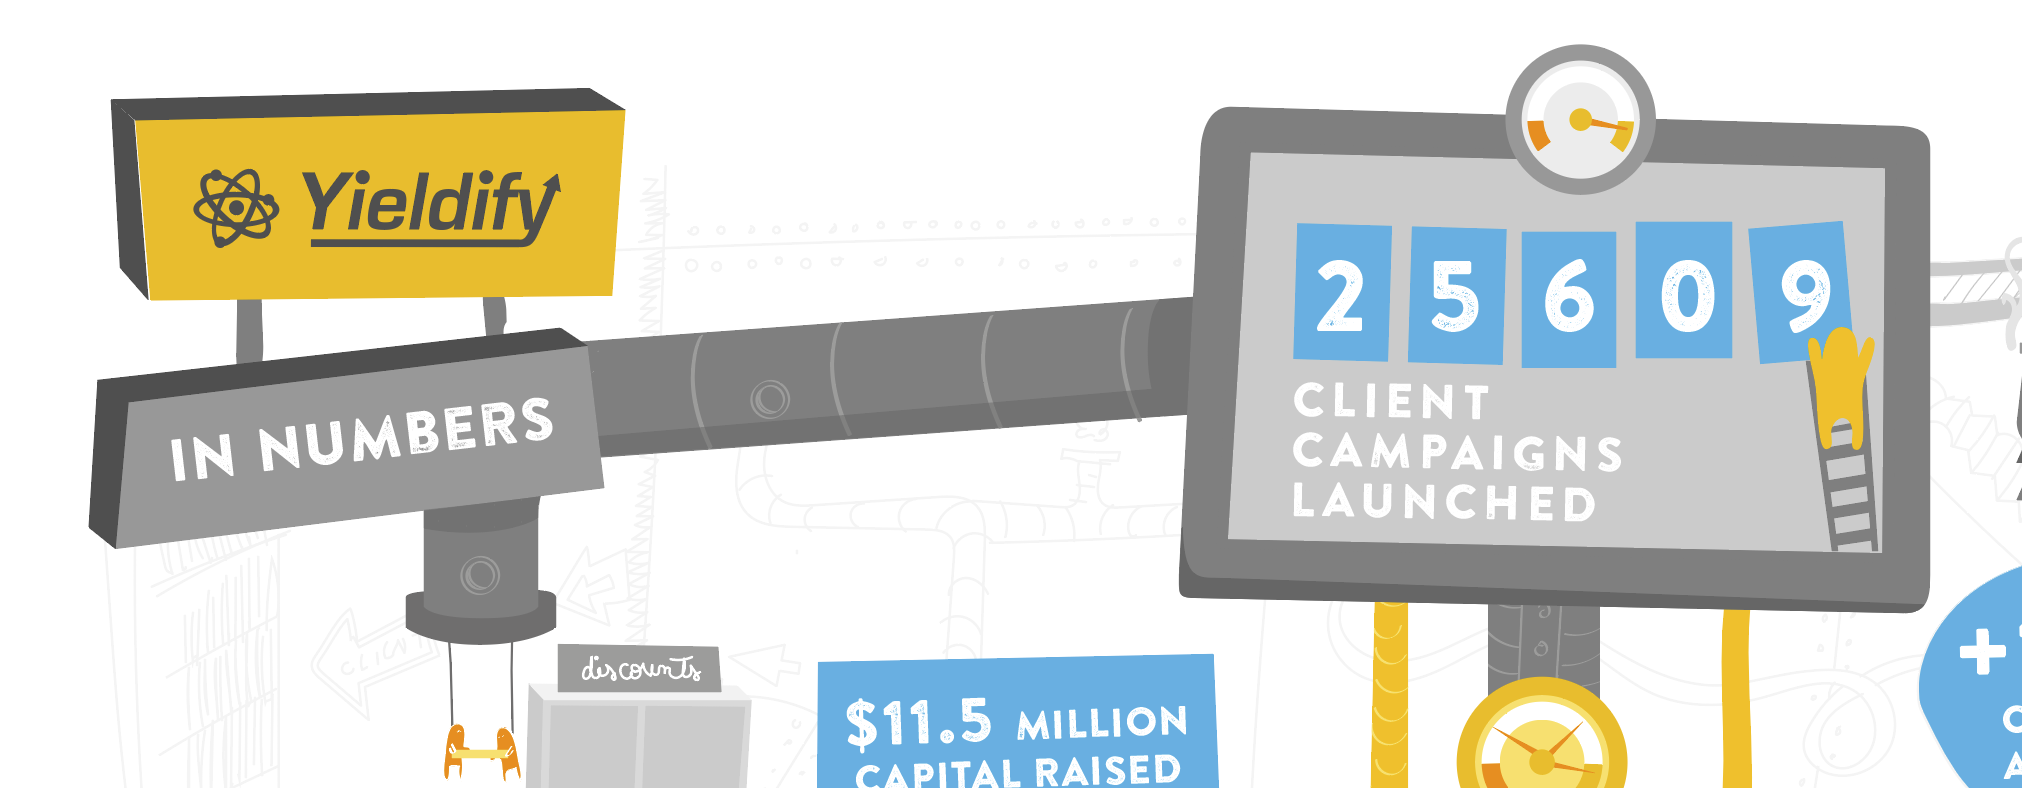 How Yieldify Grew by 110% in 2015 by Making Every Interaction Count